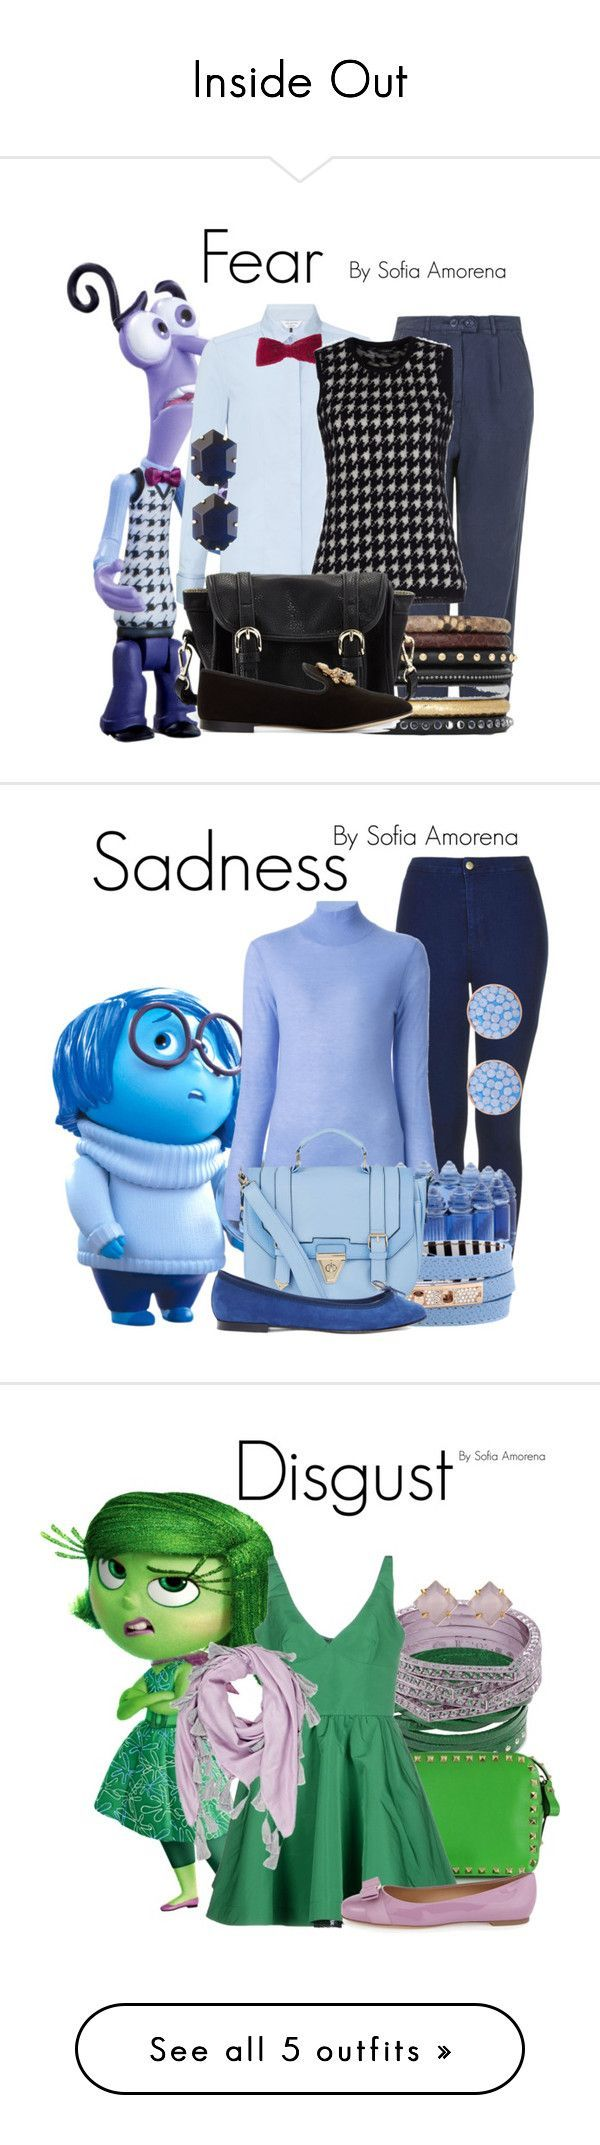 Inside Out by sofiaamorena ❤ liked on Polyvore                                                                                                                                                                                 More #characterdayspiritweek Inside Out by sofiaamorena ❤ liked on Polyvore                                                                                                                                                                                 More #characterdayspiritweek